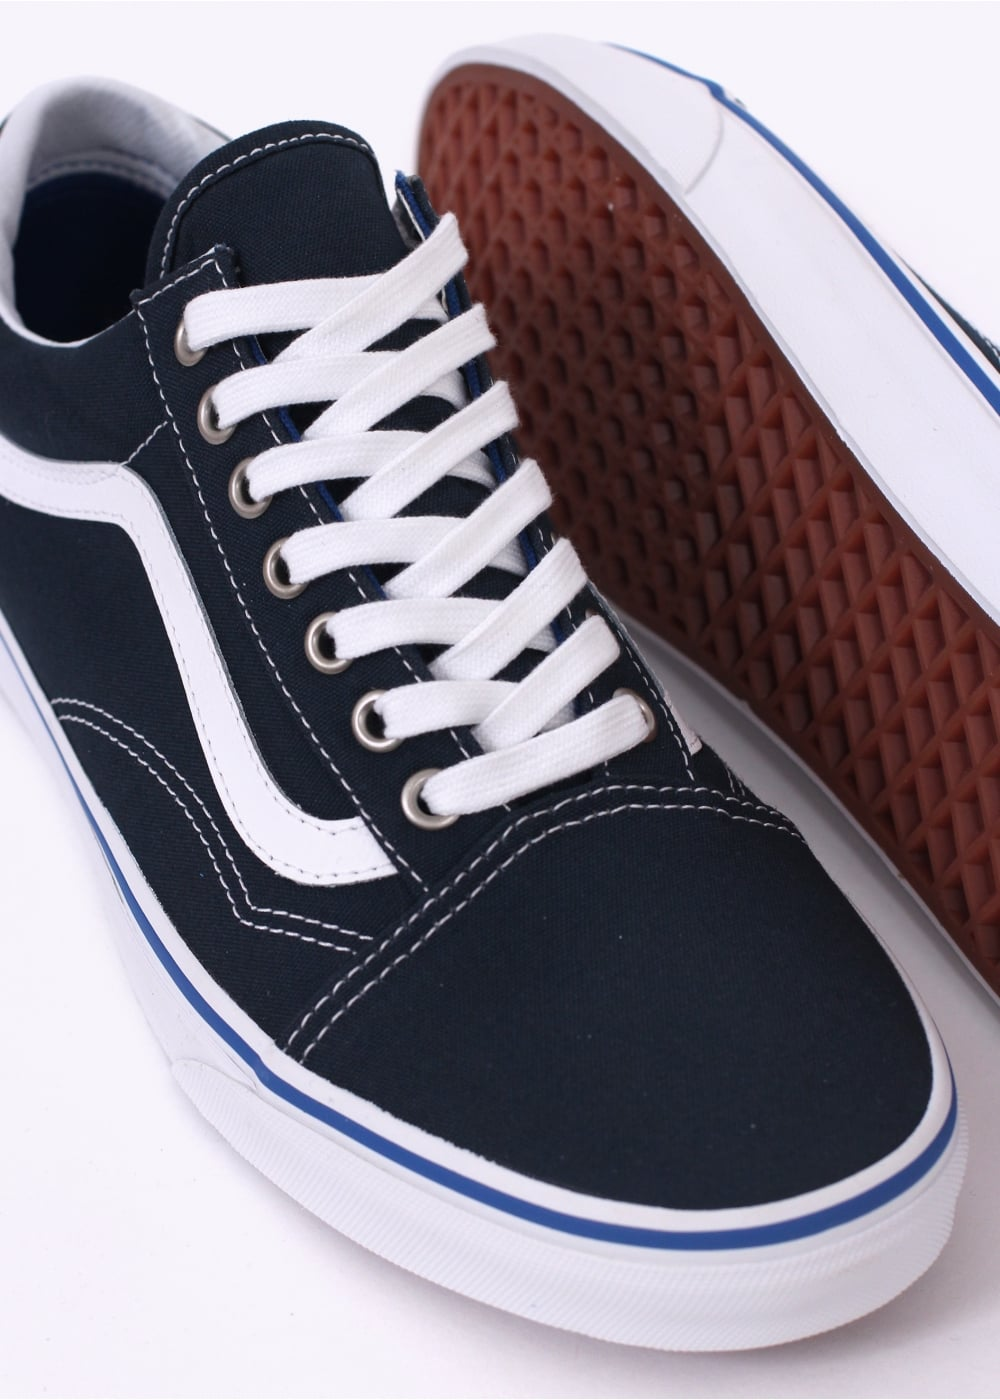 Vans Old Skool - Midnight Navy - Trainers from Triads UK 348d094814b2